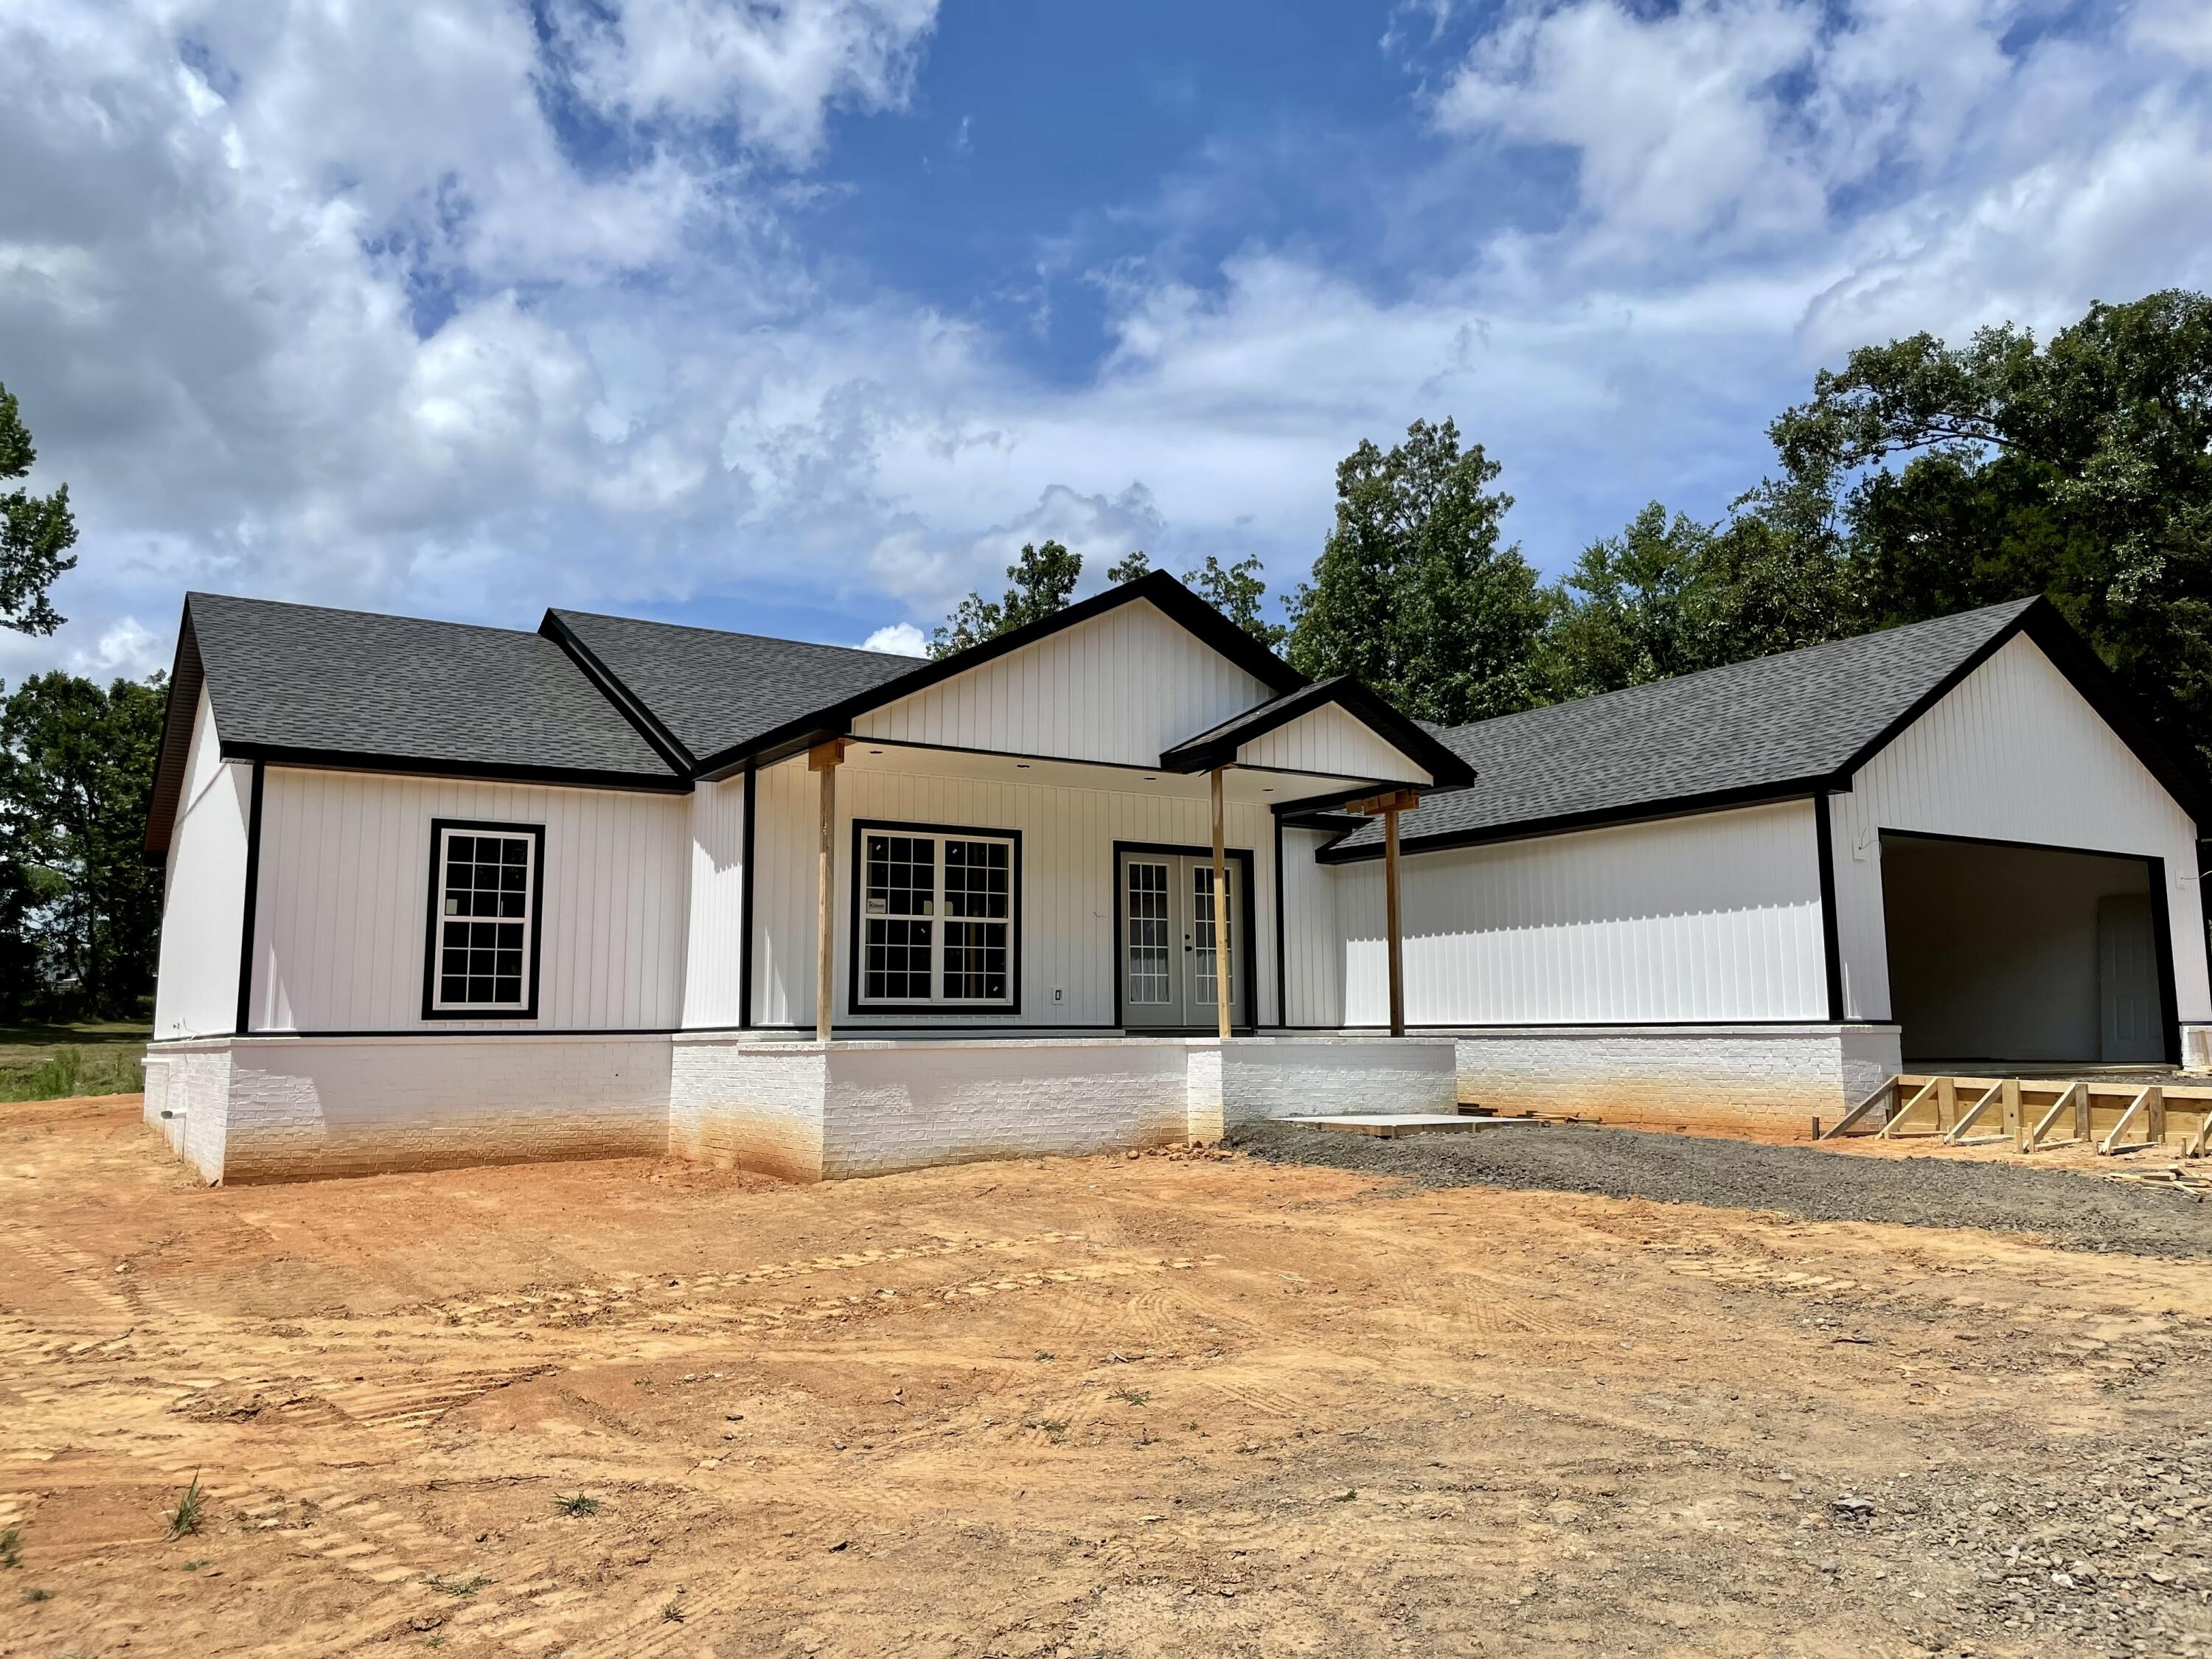 Immaculate Brand New Construction home on 2.47 acres outside Russellville city limits. This 2600 sq ft home features 4 Bedrooms 2.5 bathrooms, and open concept living, kitchen, and dining areas. With vaulted ceilings and 9 ft ceilings this home seamlessly creates a large airy feel, with lots of natural sunlight throughout. Luxury features include Granite counters, wood floors, and stainless steel appliances. Lots of builtins throughout home, with a large utility closet, walk in pantry, and 2 car garage. Master bedroom contains Tray ceilings, walk in tile shower, freestanding tub, and walk in closet. The additional three bedrooms create a split floor plan layout perfect for family style living. Outside features covered front/back porches, level lot surrounded by trees for privacy, and pond.